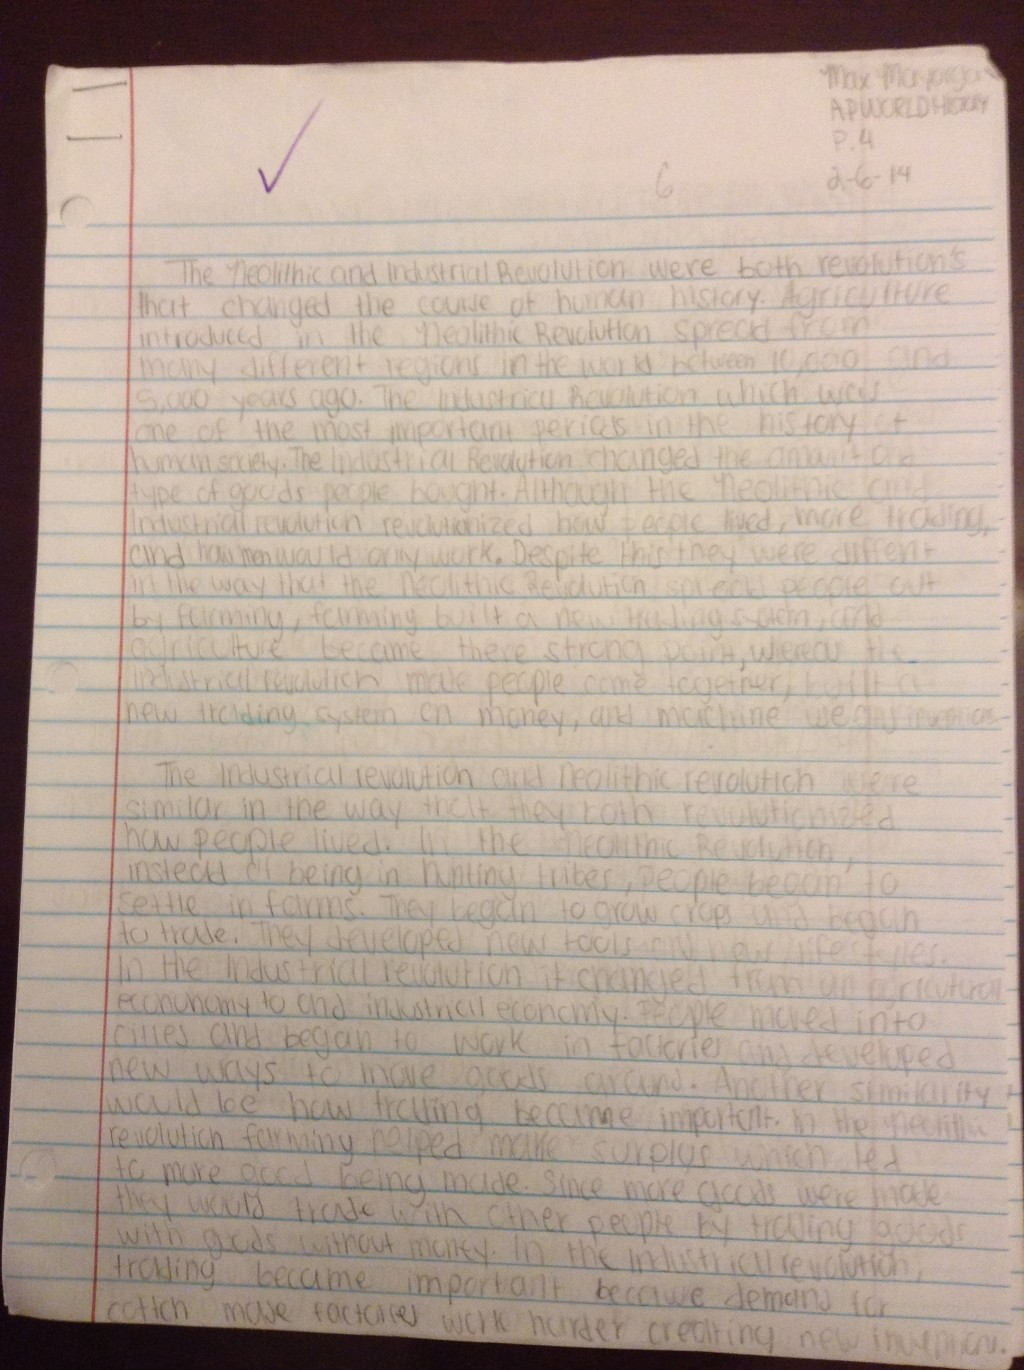 002 Image2010 Neolithic Revolution Essay Fearsome Turning Point Thematic Dbq Large